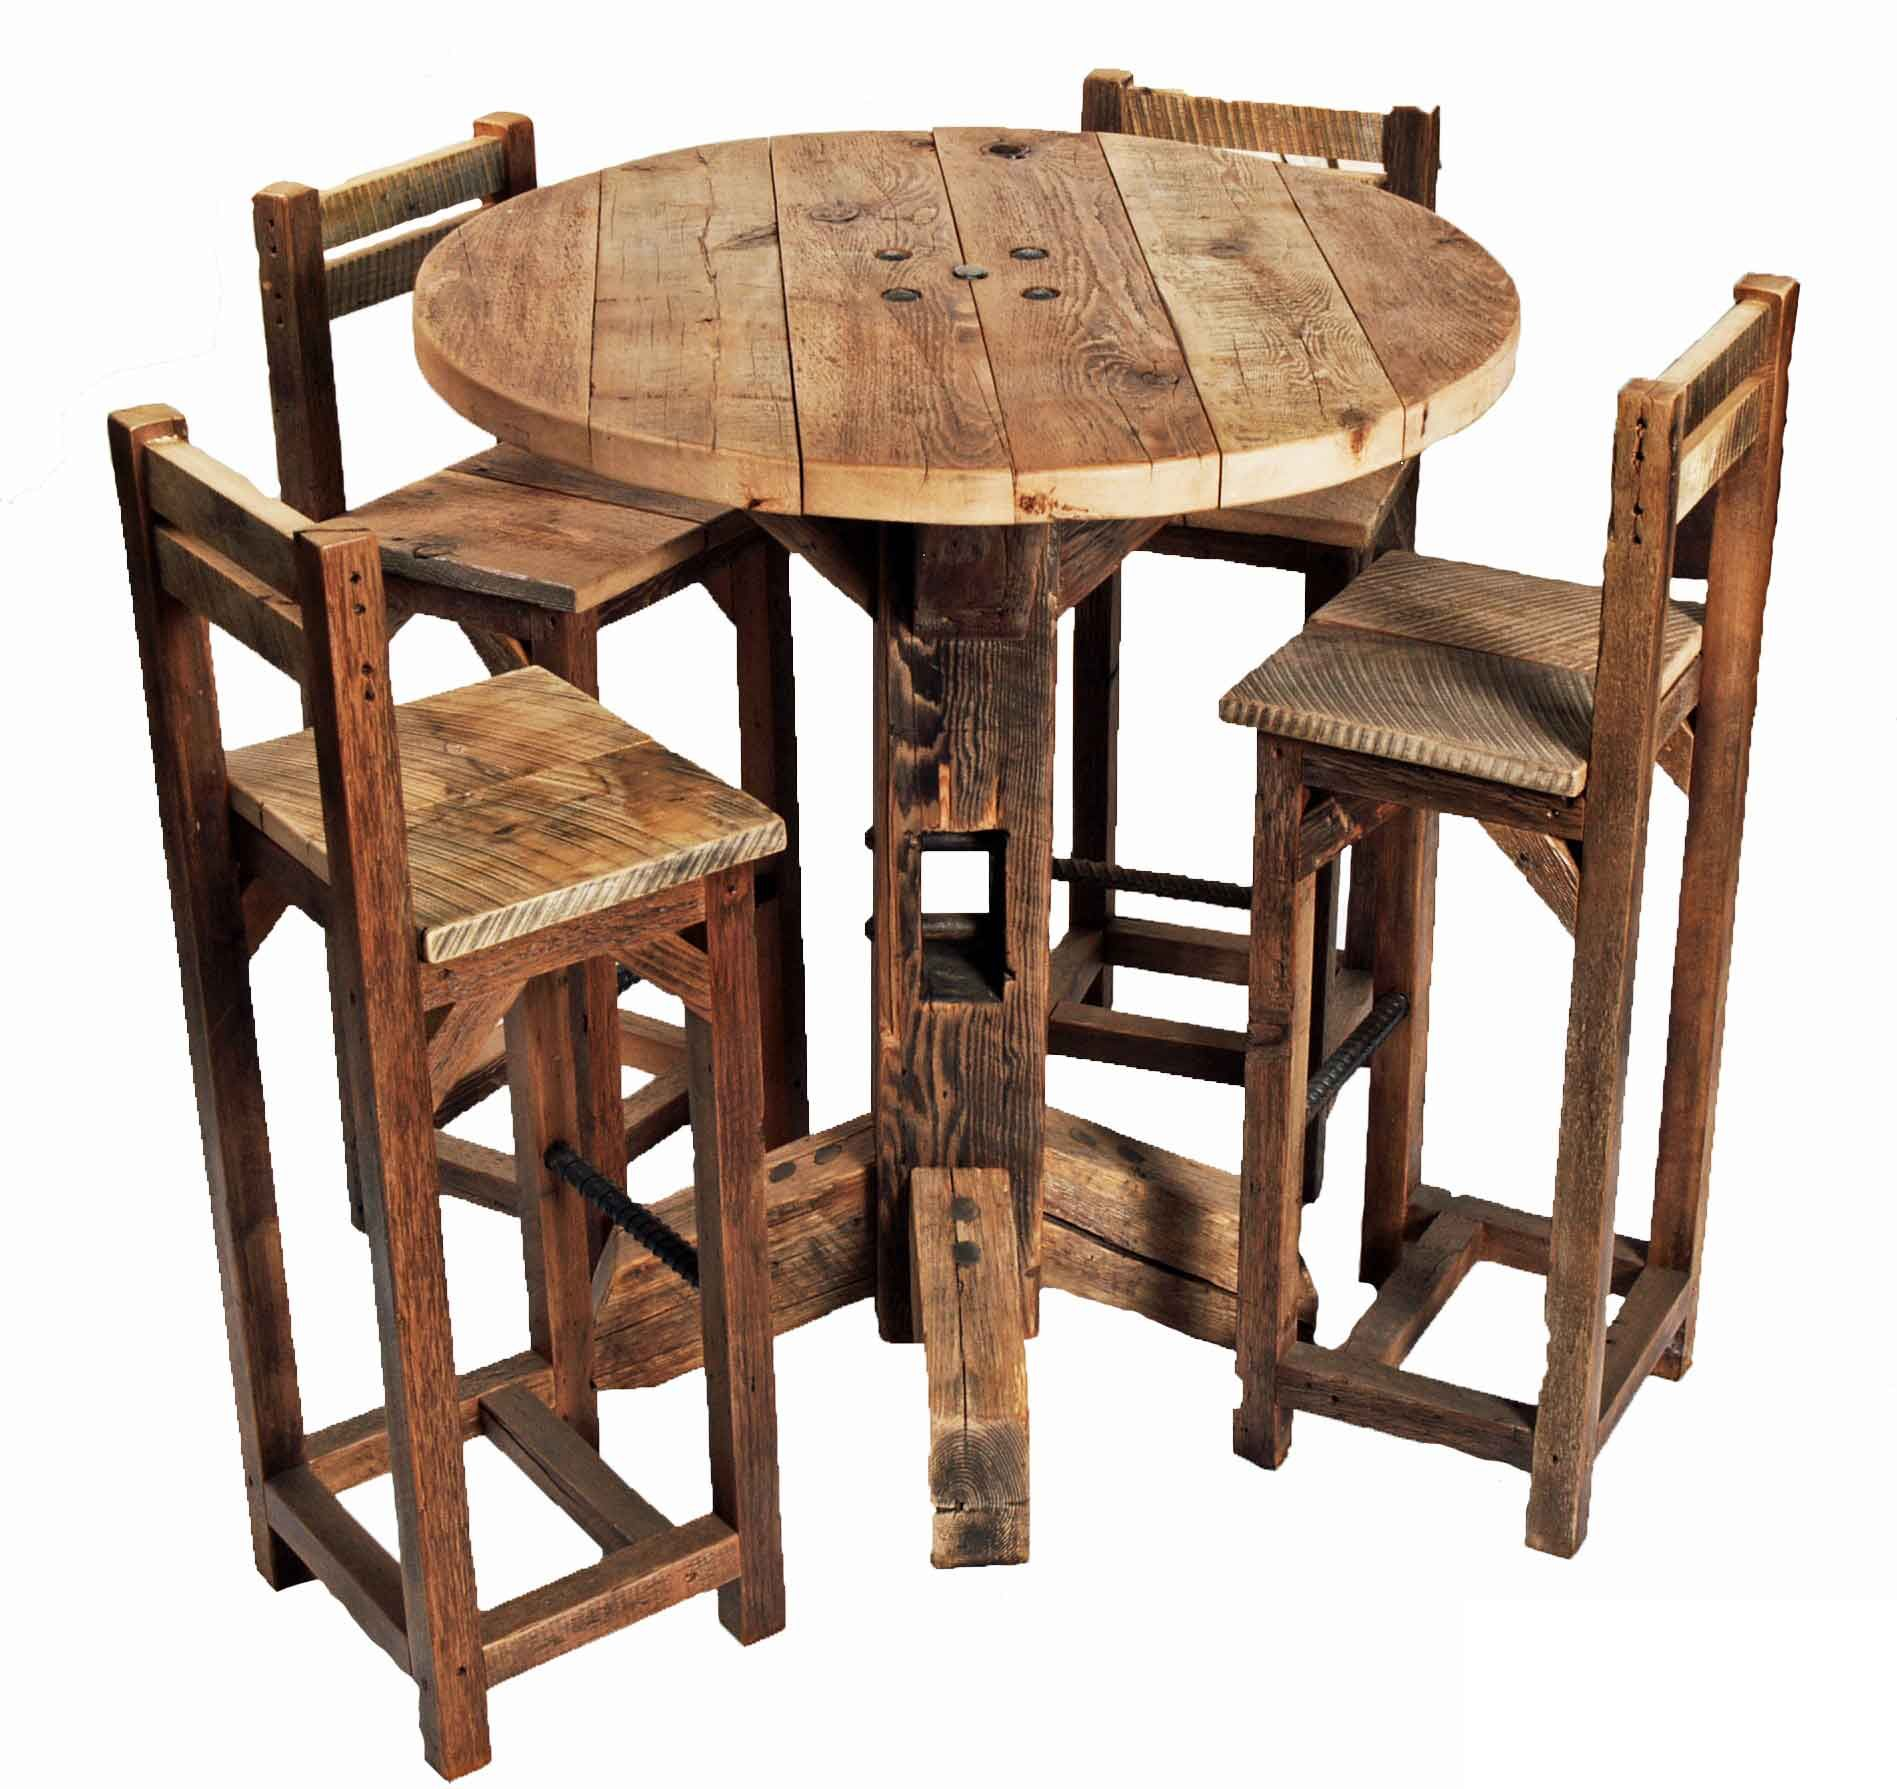 Furniture old rustic small high round top kitchen table Kitchen table with bench and chairs